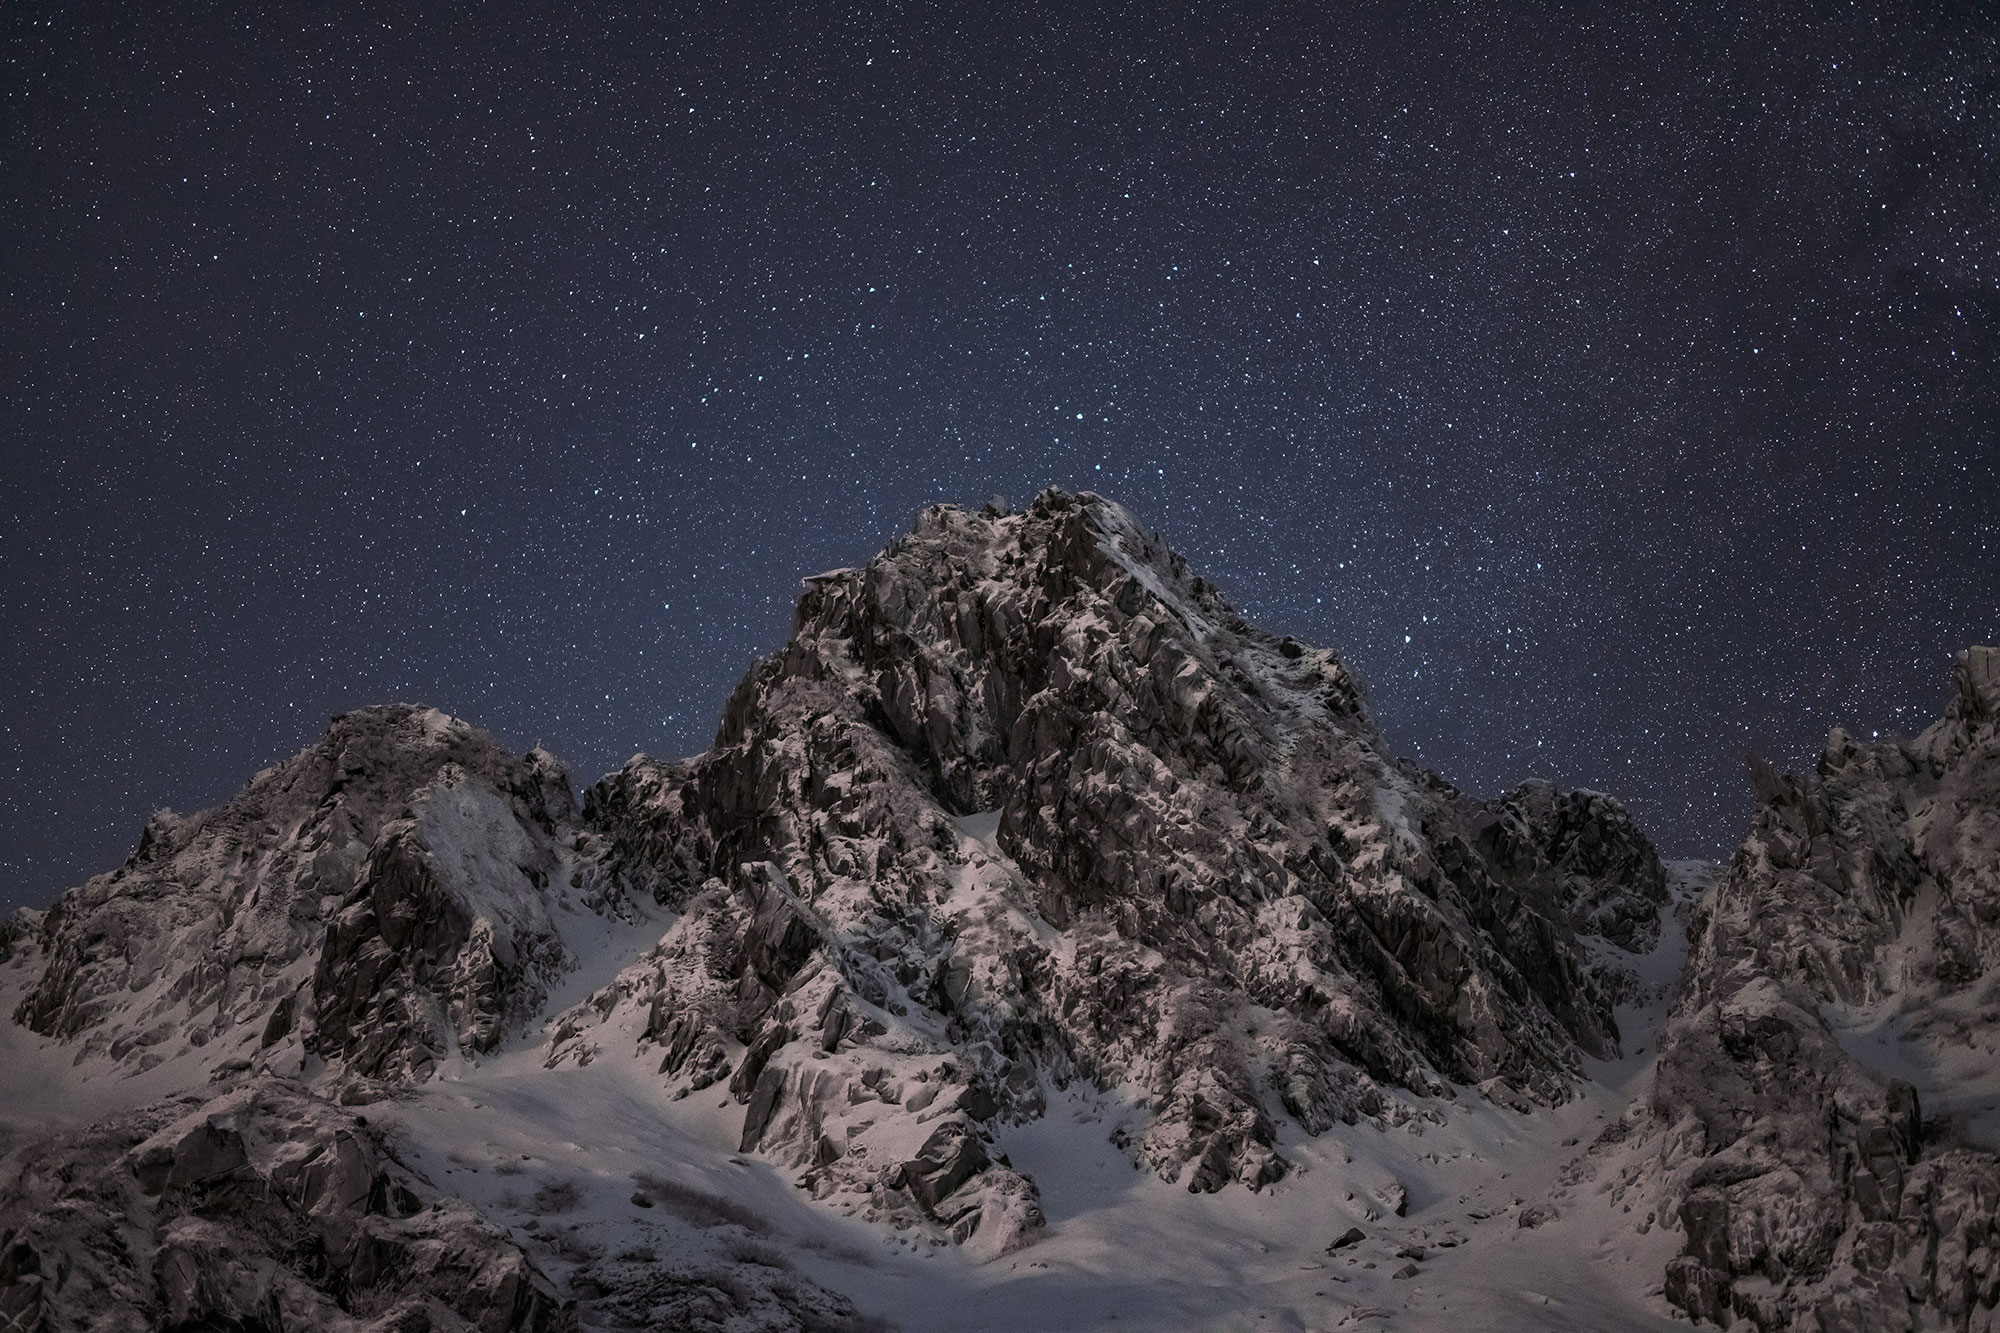 NIKKOR Z 58mm f/0.95 S Noct photo of a maountain range in low light with a star filled sky